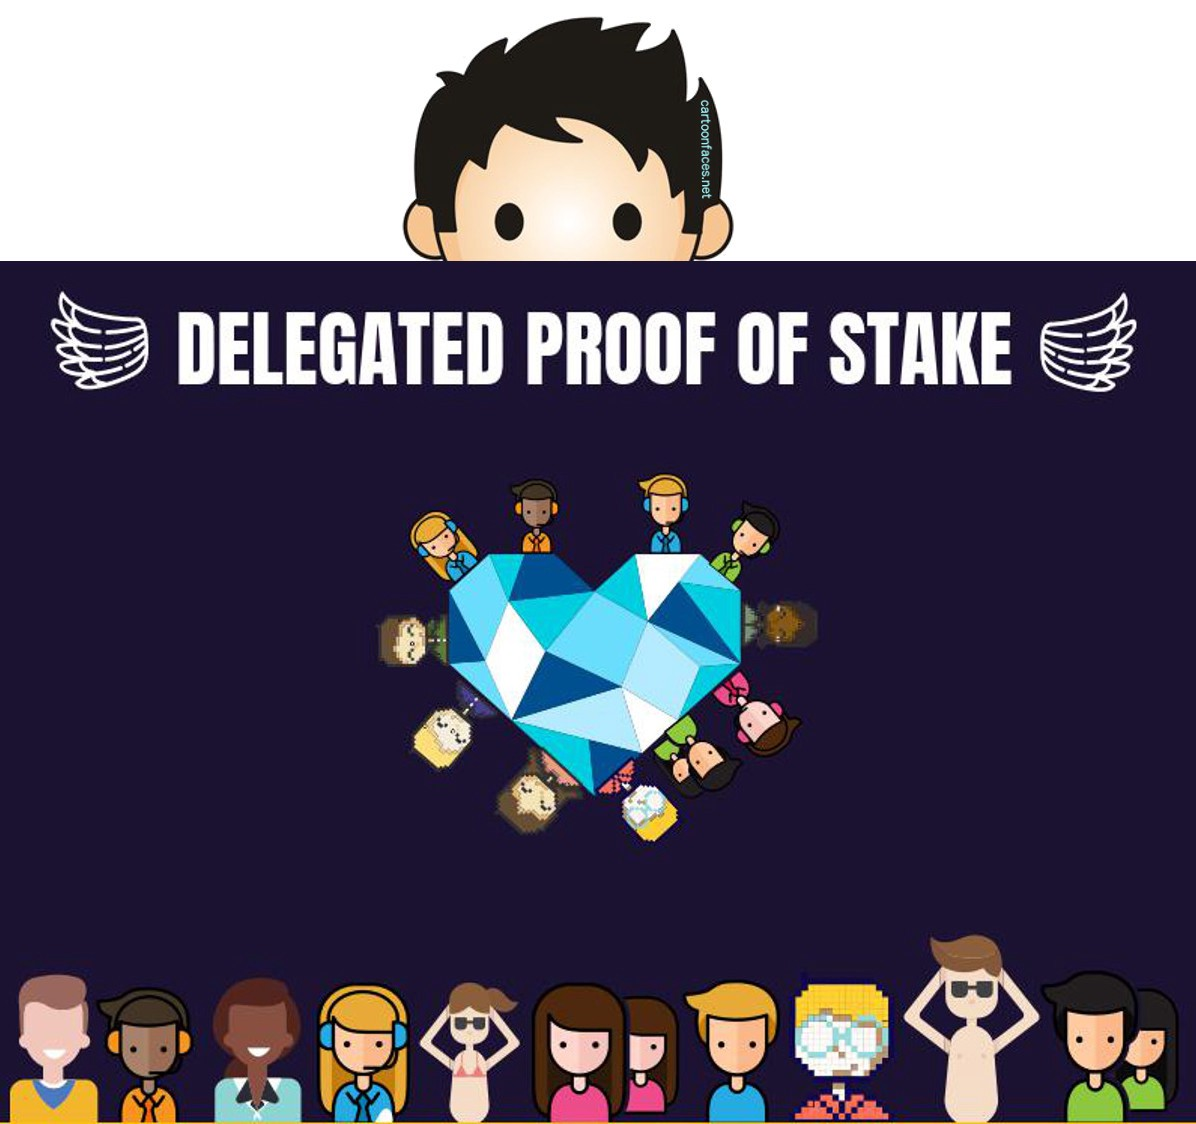 /explain-delegated-proof-of-stake-like-im-5-888b2a74897d feature image